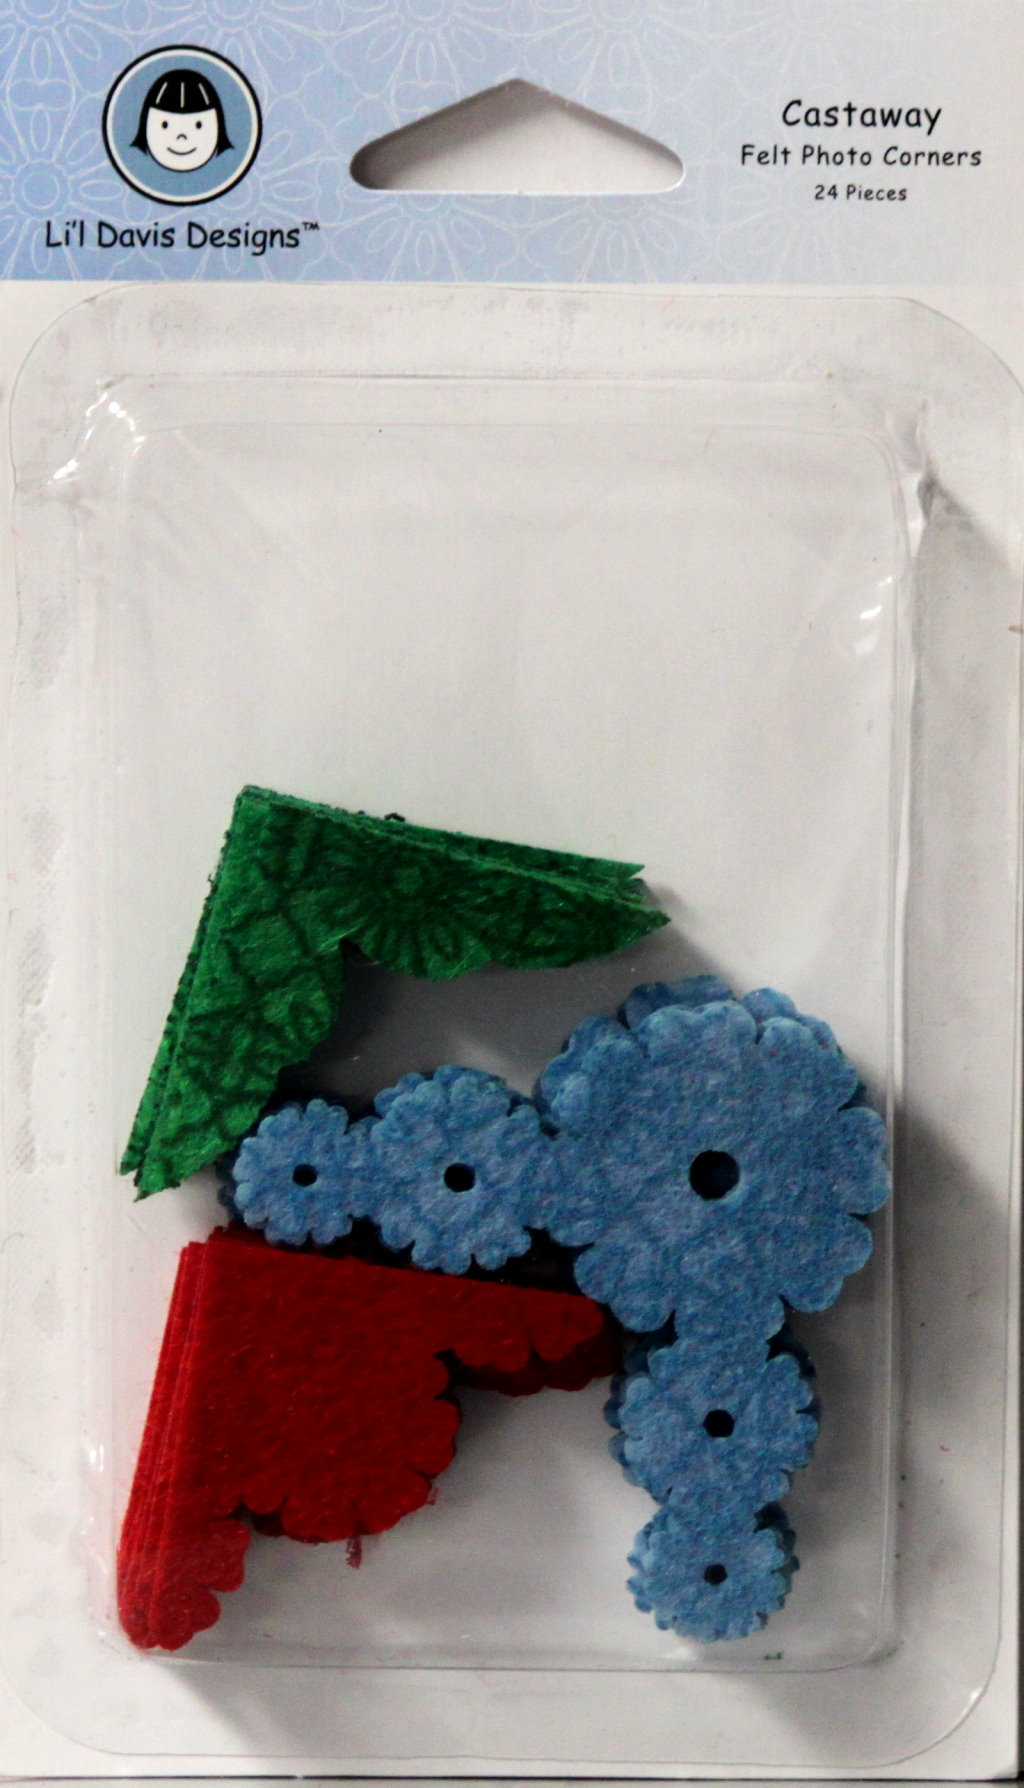 Li'l Davis Designs Castaway Felt Photo Corners Embellishments